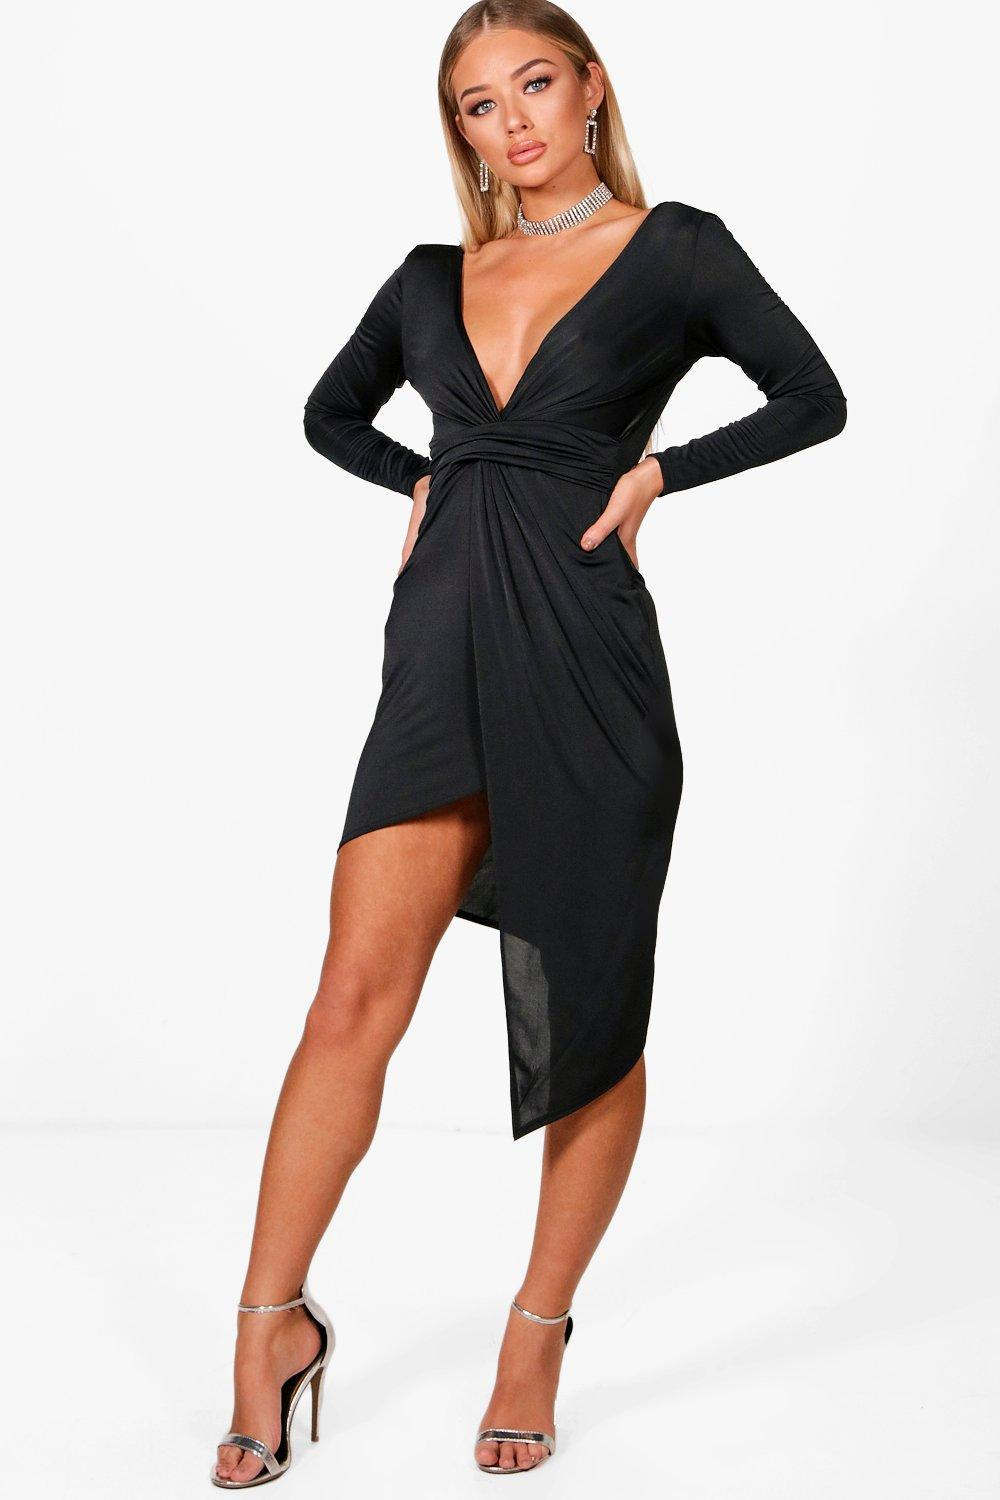 10e9d71562d4 Boohoo - Black Slinky Asymmetric Wrap Midi Dress - Lyst. View fullscreen